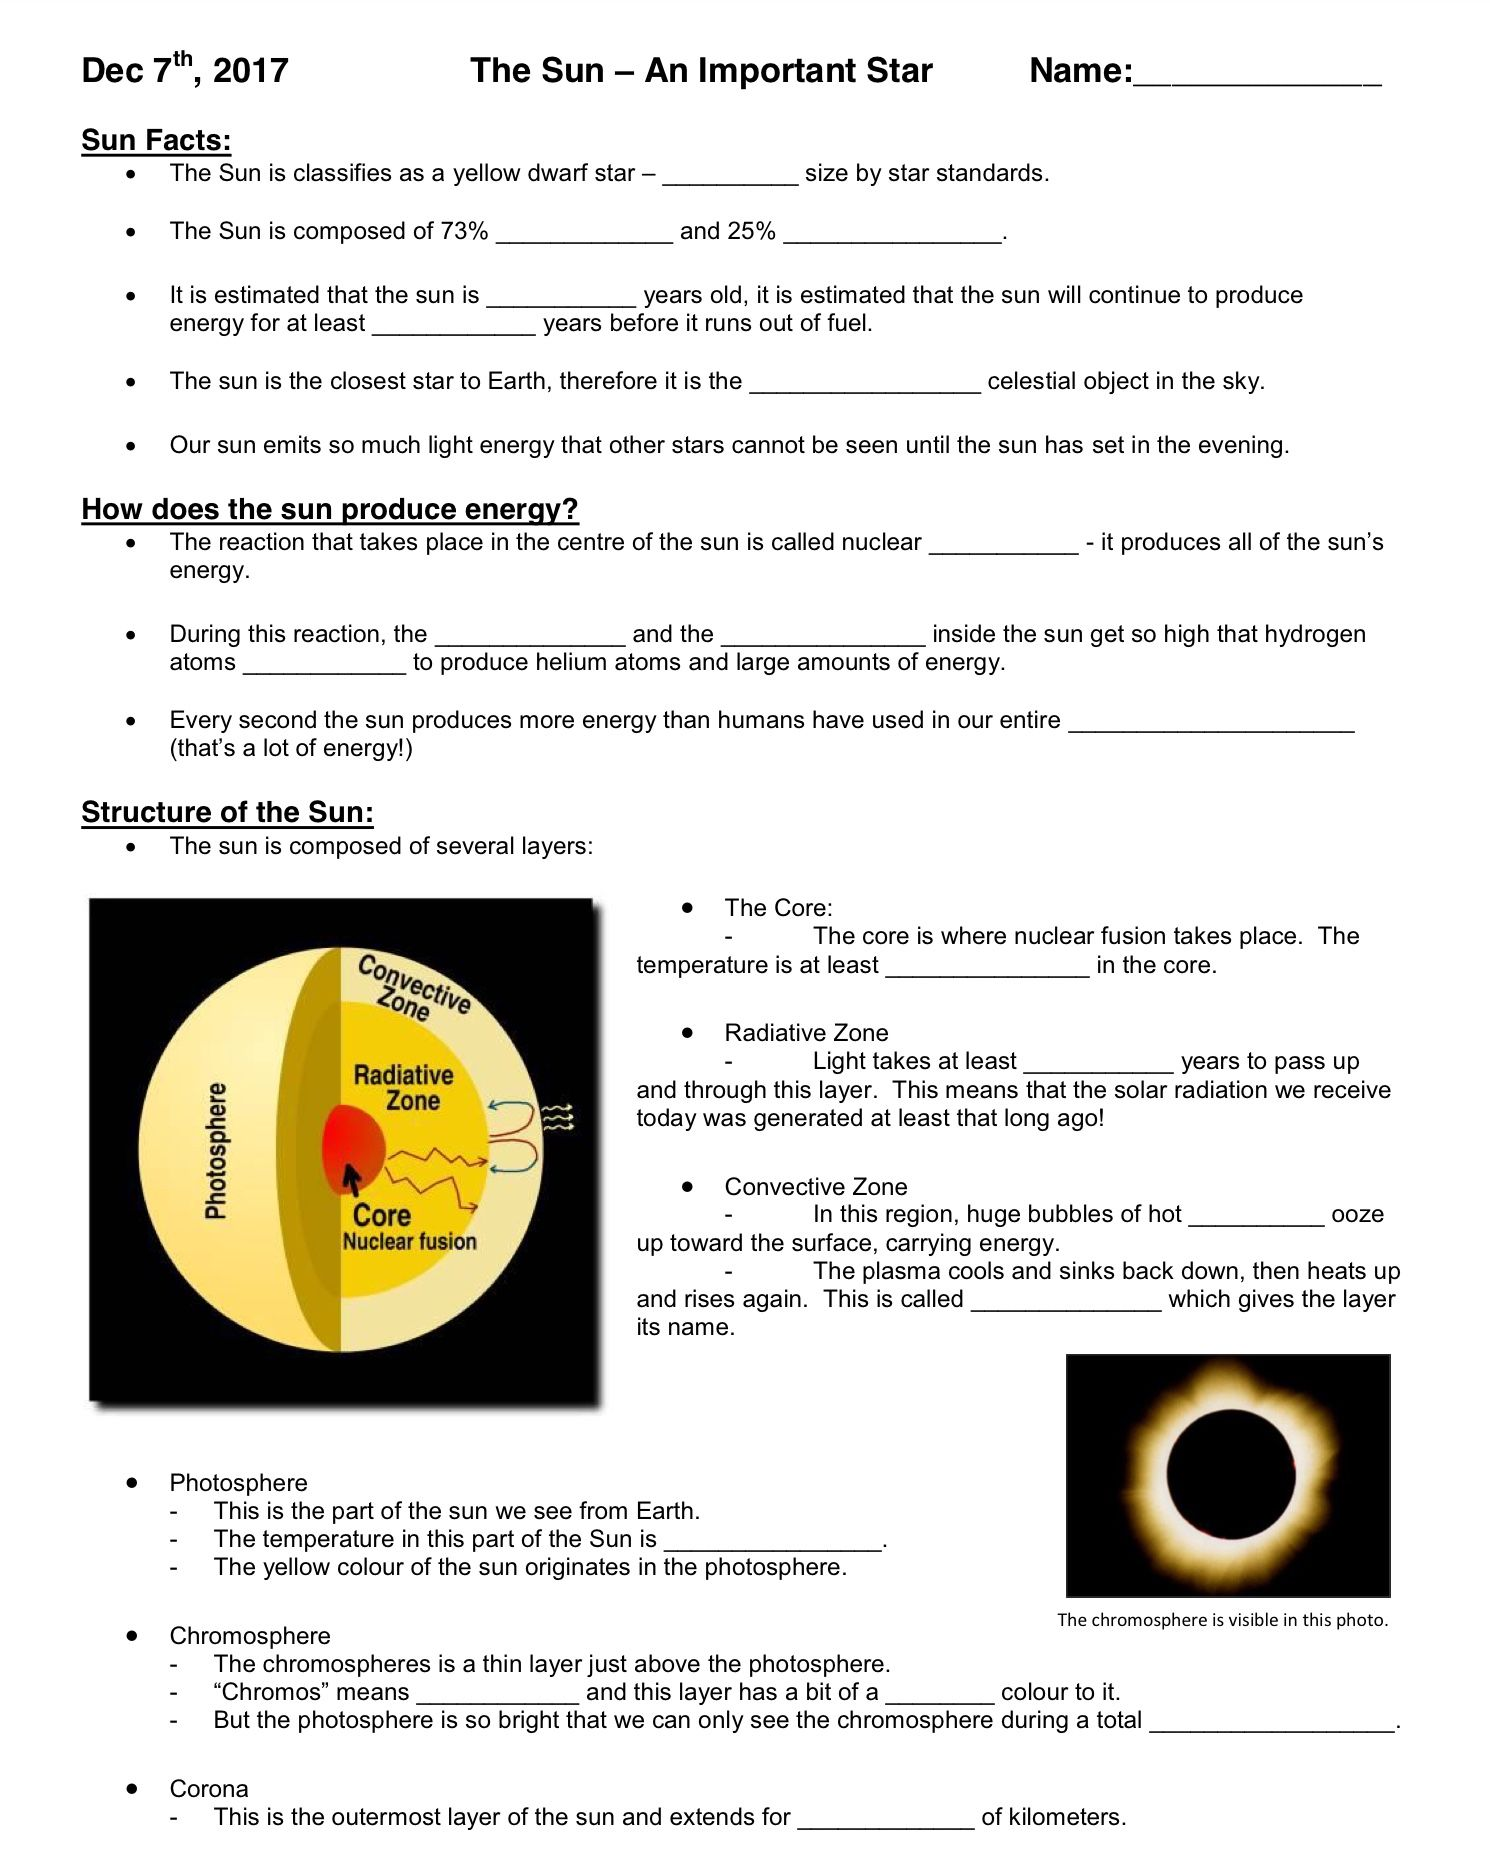 medium resolution of The Sun - An Important Star - Worksheet - December 7